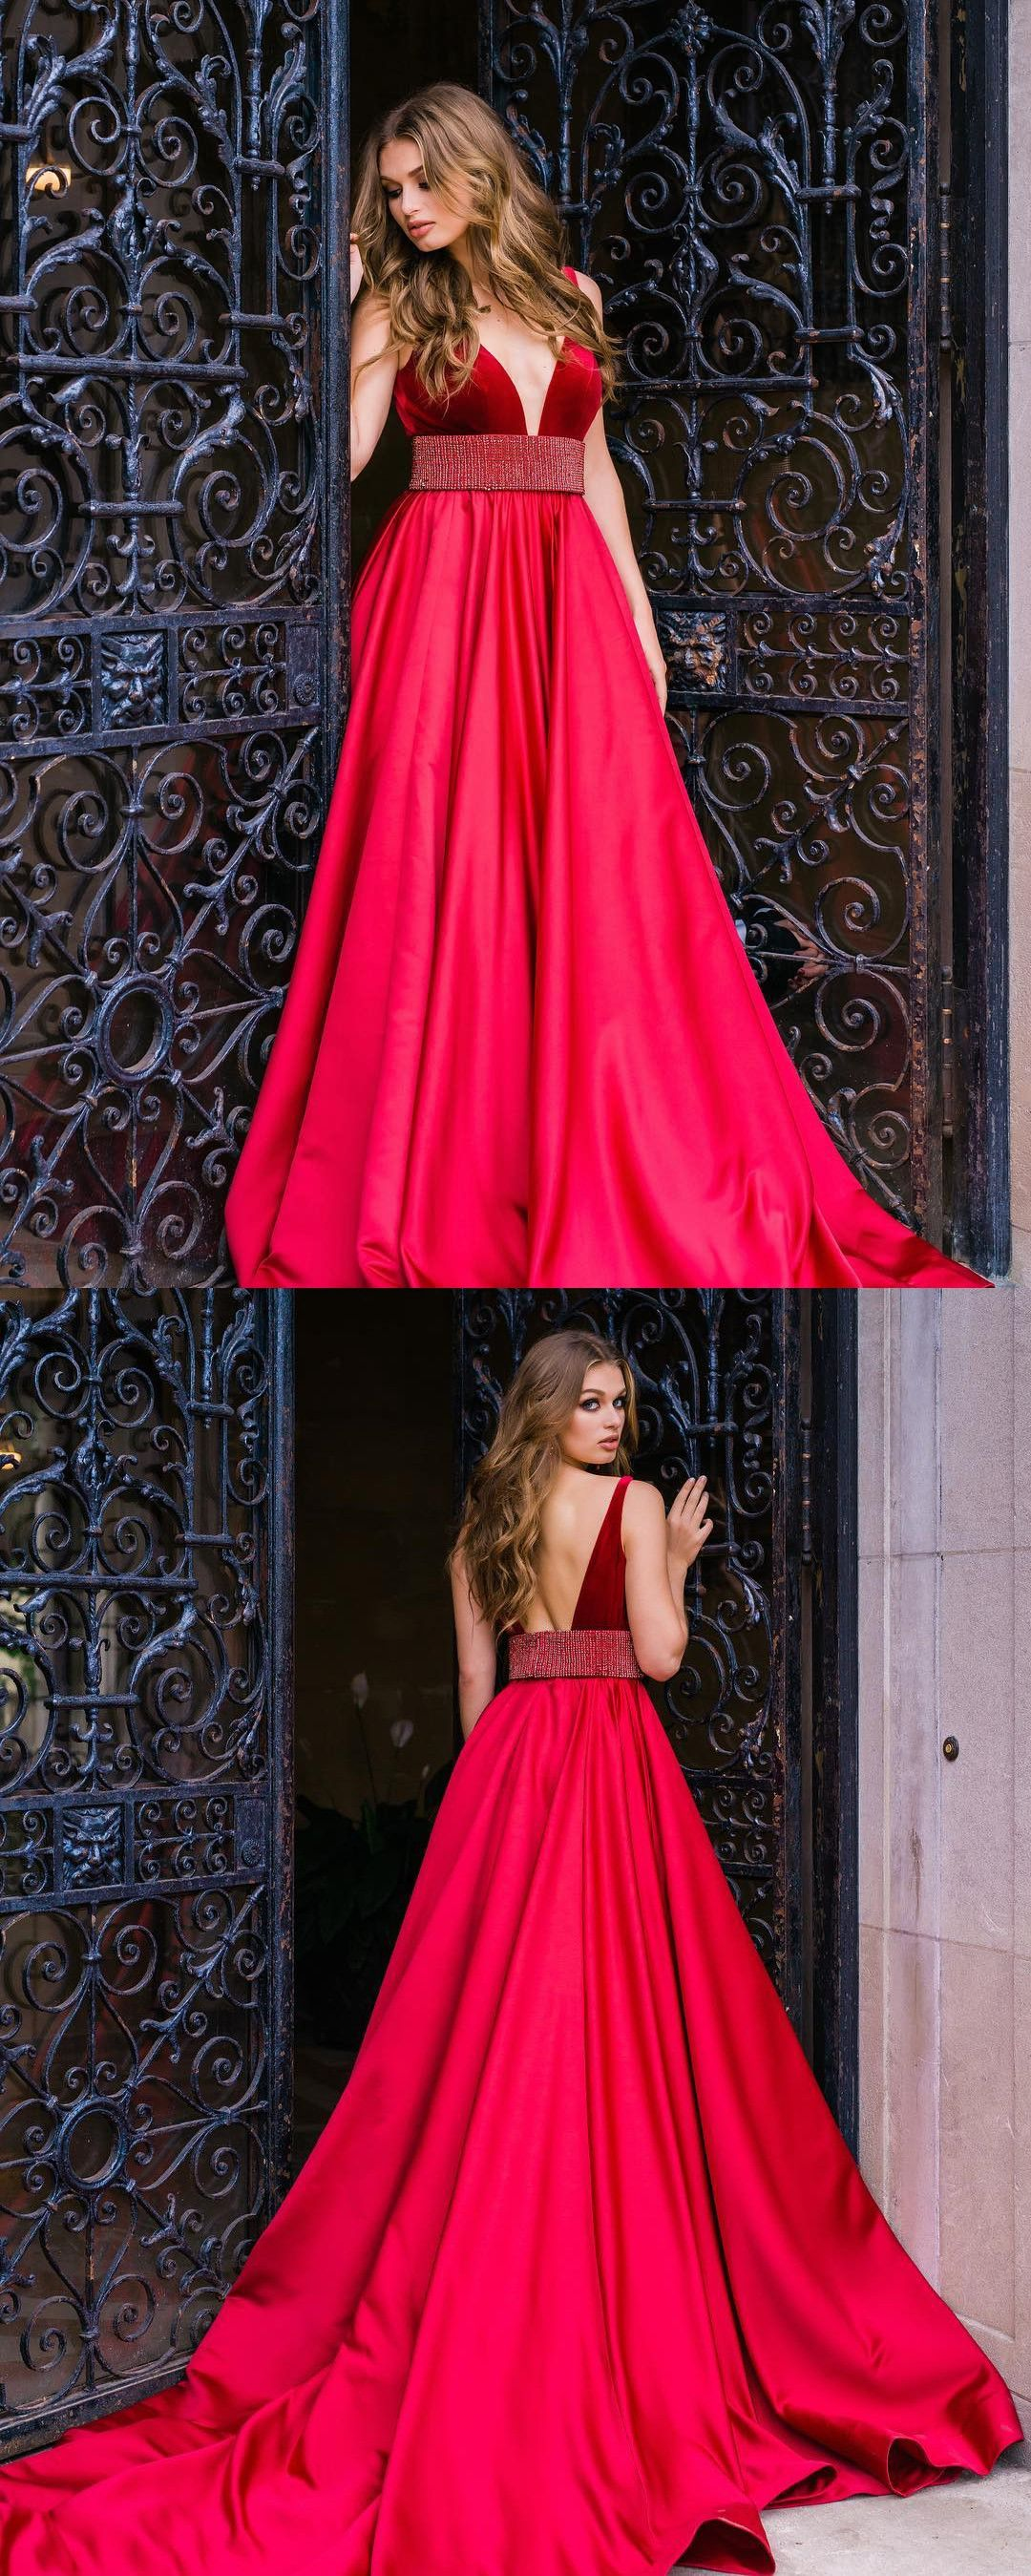 prom dresses long prom dresses red prom dresses v neck red